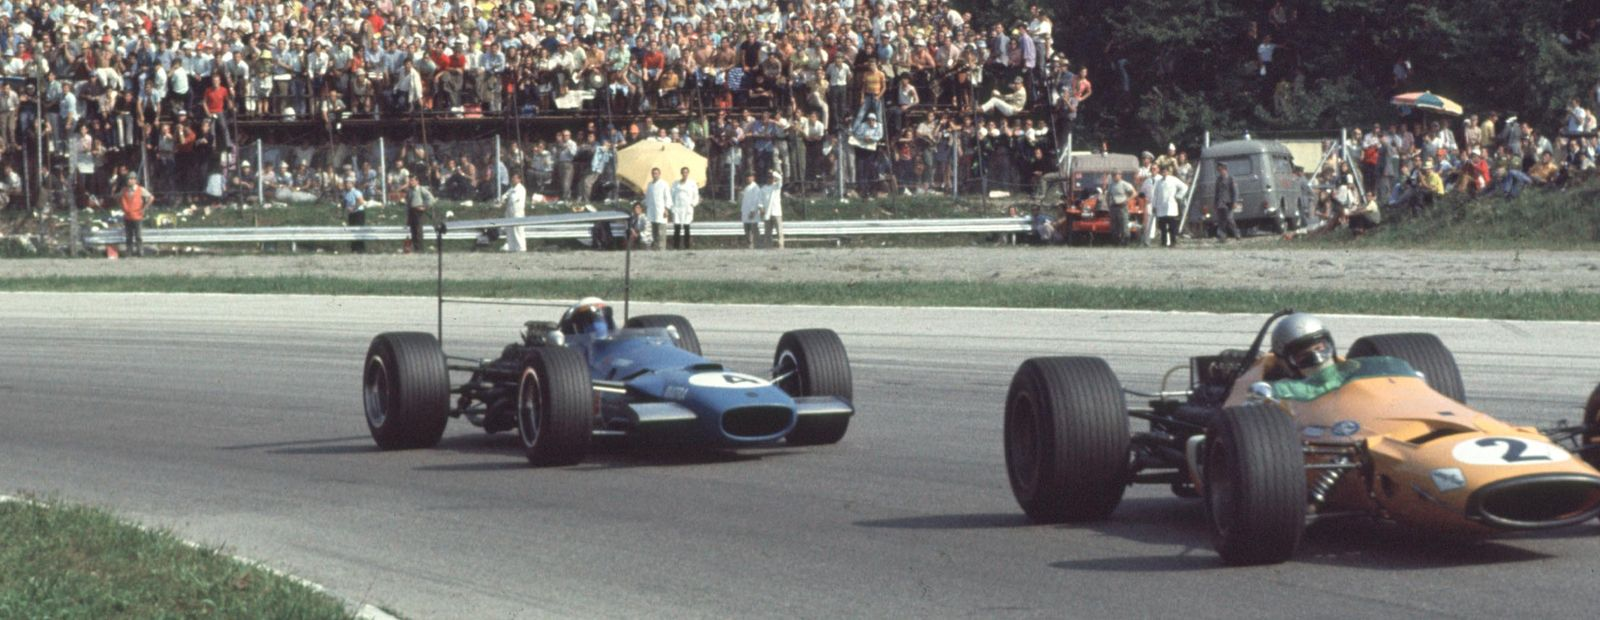 The history of Bruce and the Italian Grand Prix